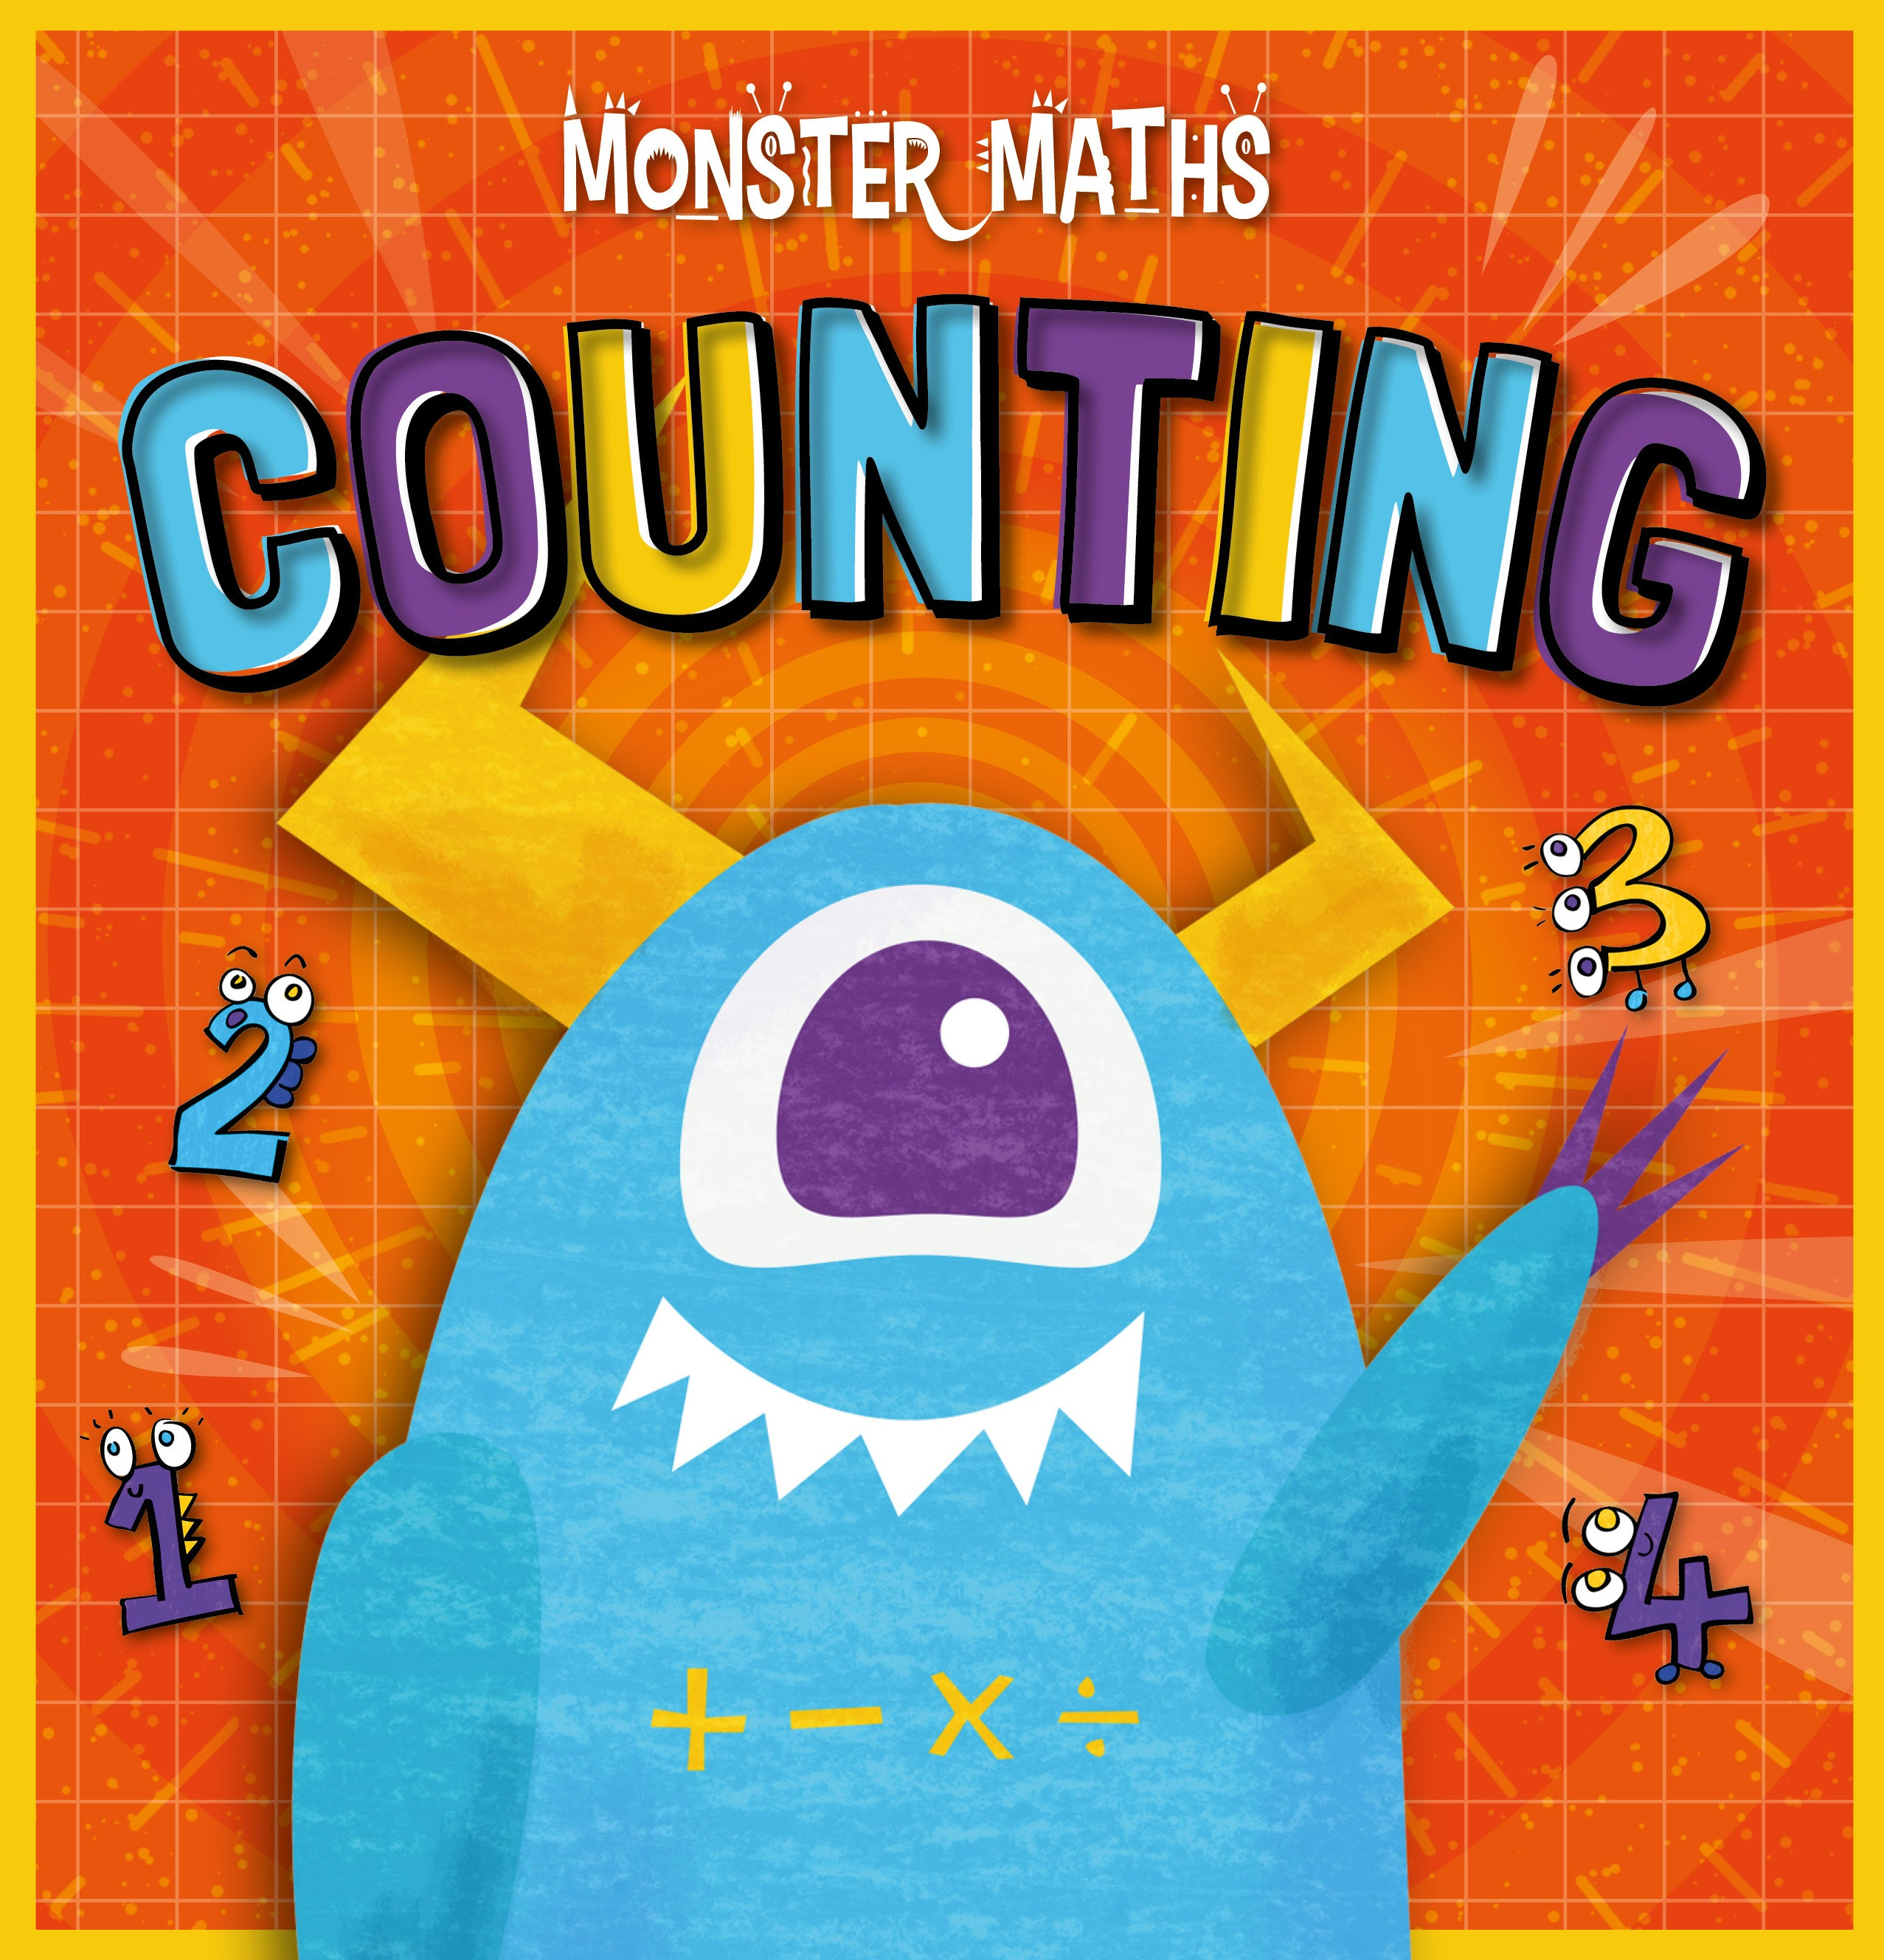 Monster Maths - Counting ISBN 9781786375797